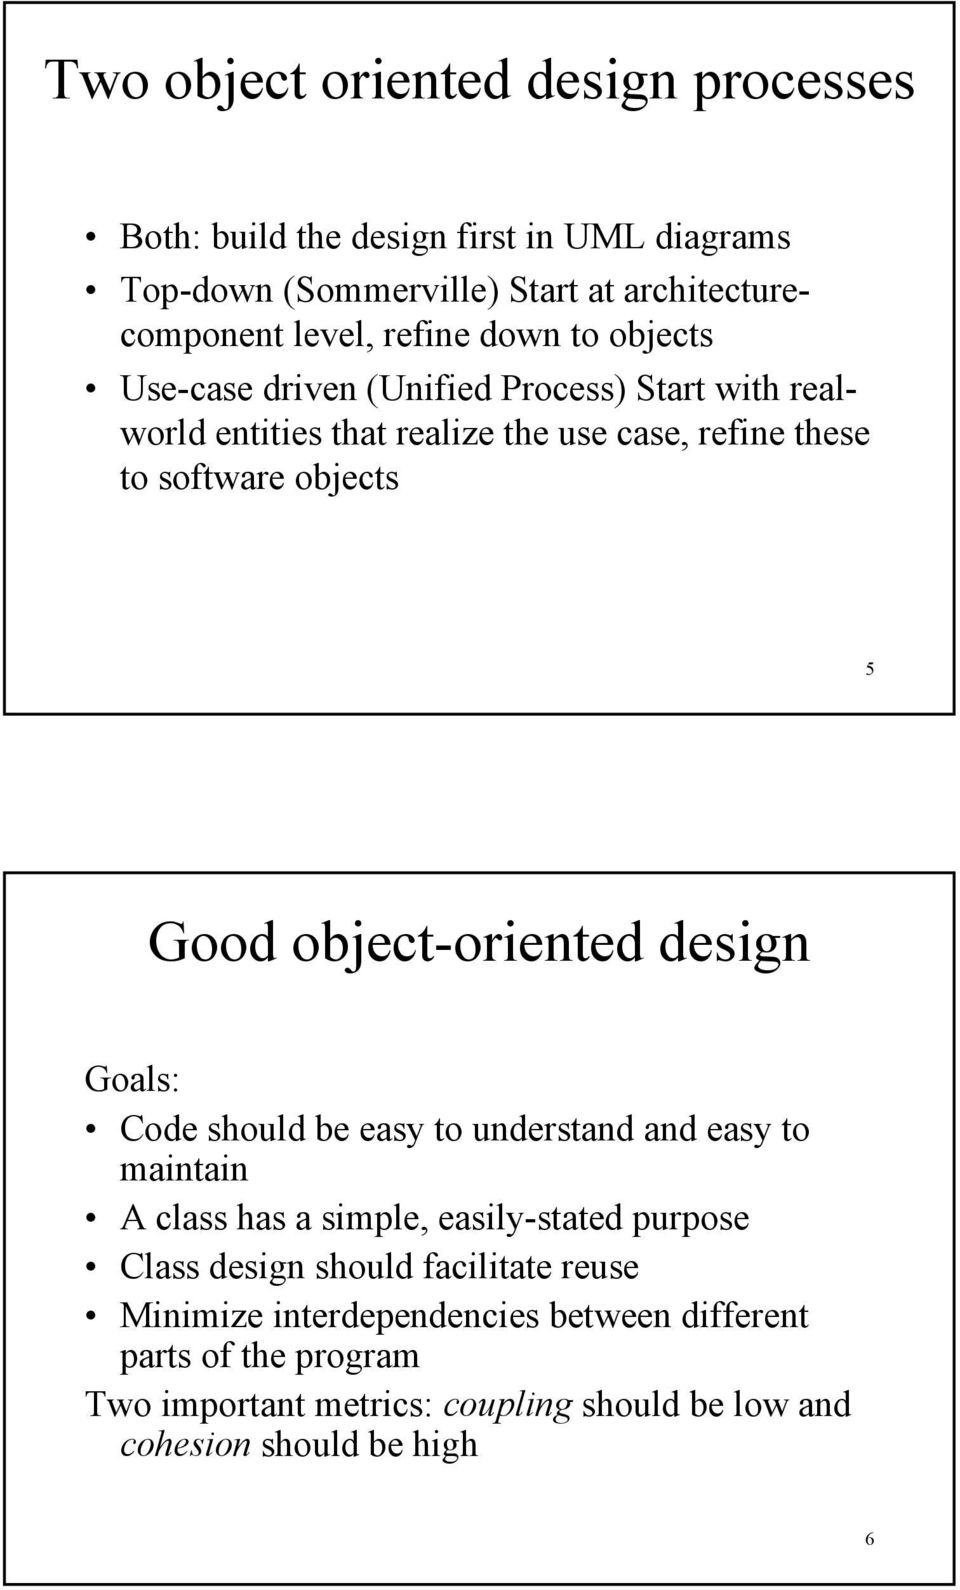 object-oriented design Goals: Code should be easy to understand and easy to maintain A class has a simple, easily-stated purpose Class design should